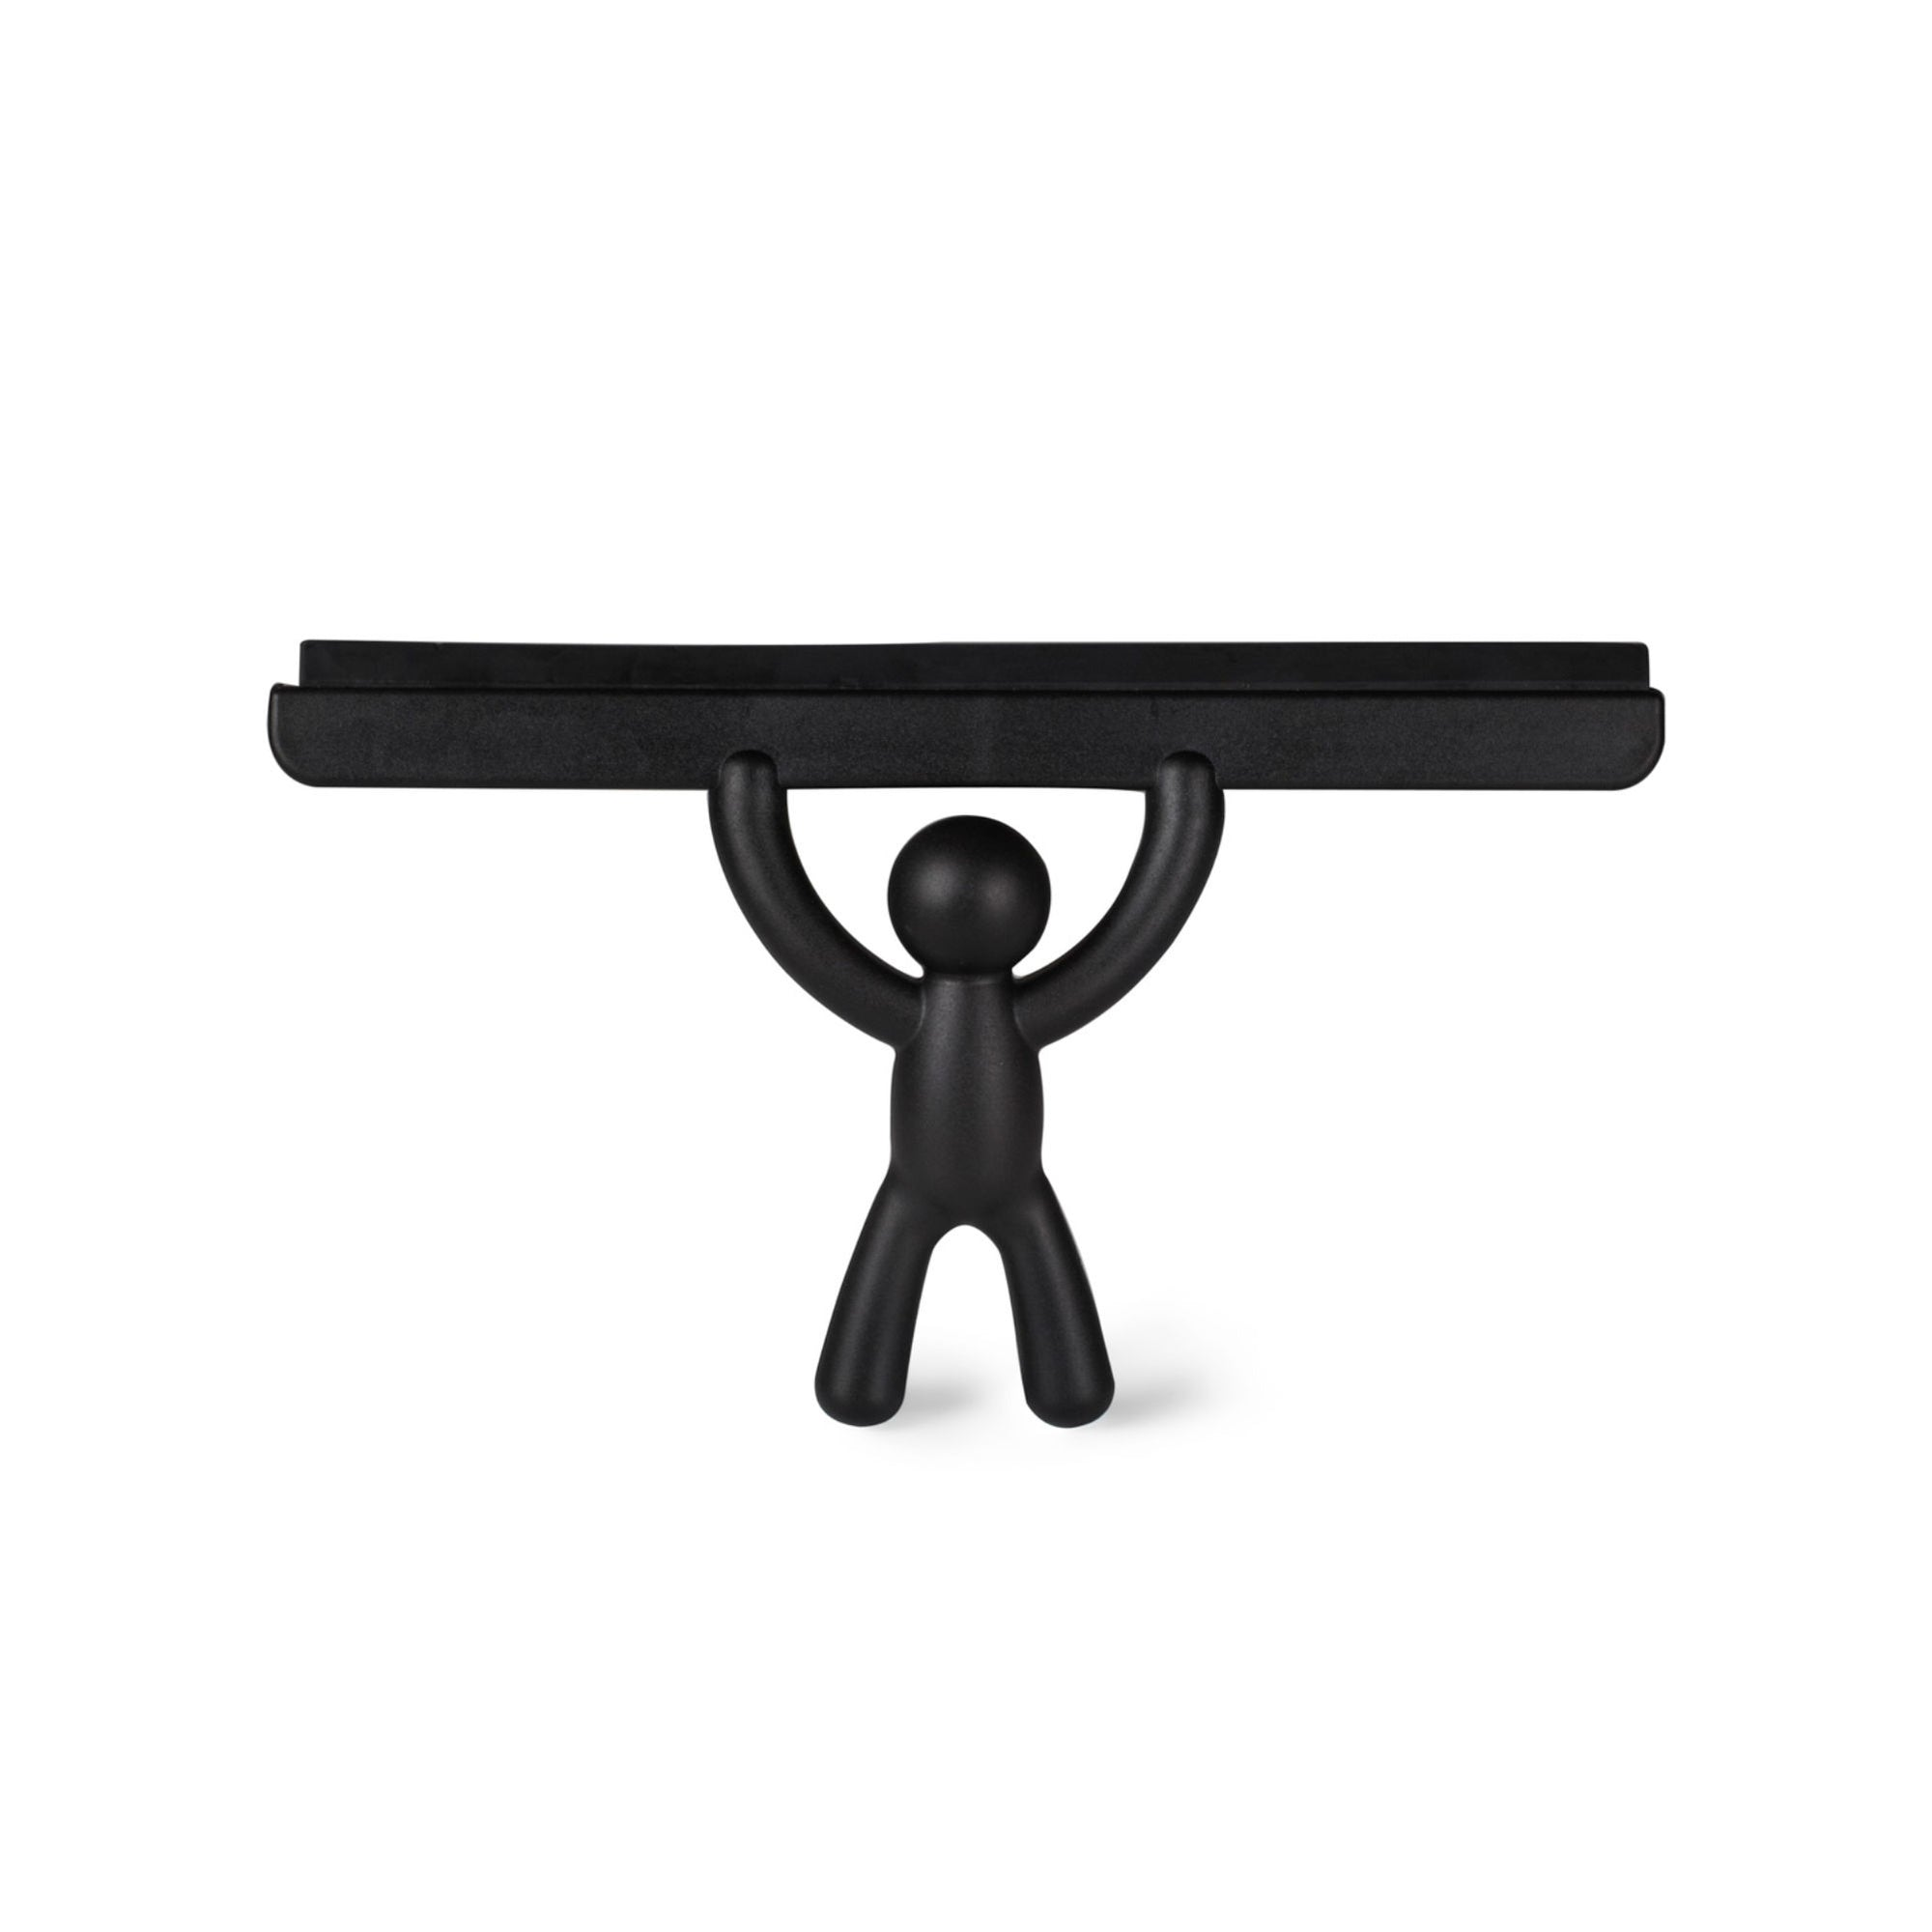 Umbra Buddy mirror squeegee, black